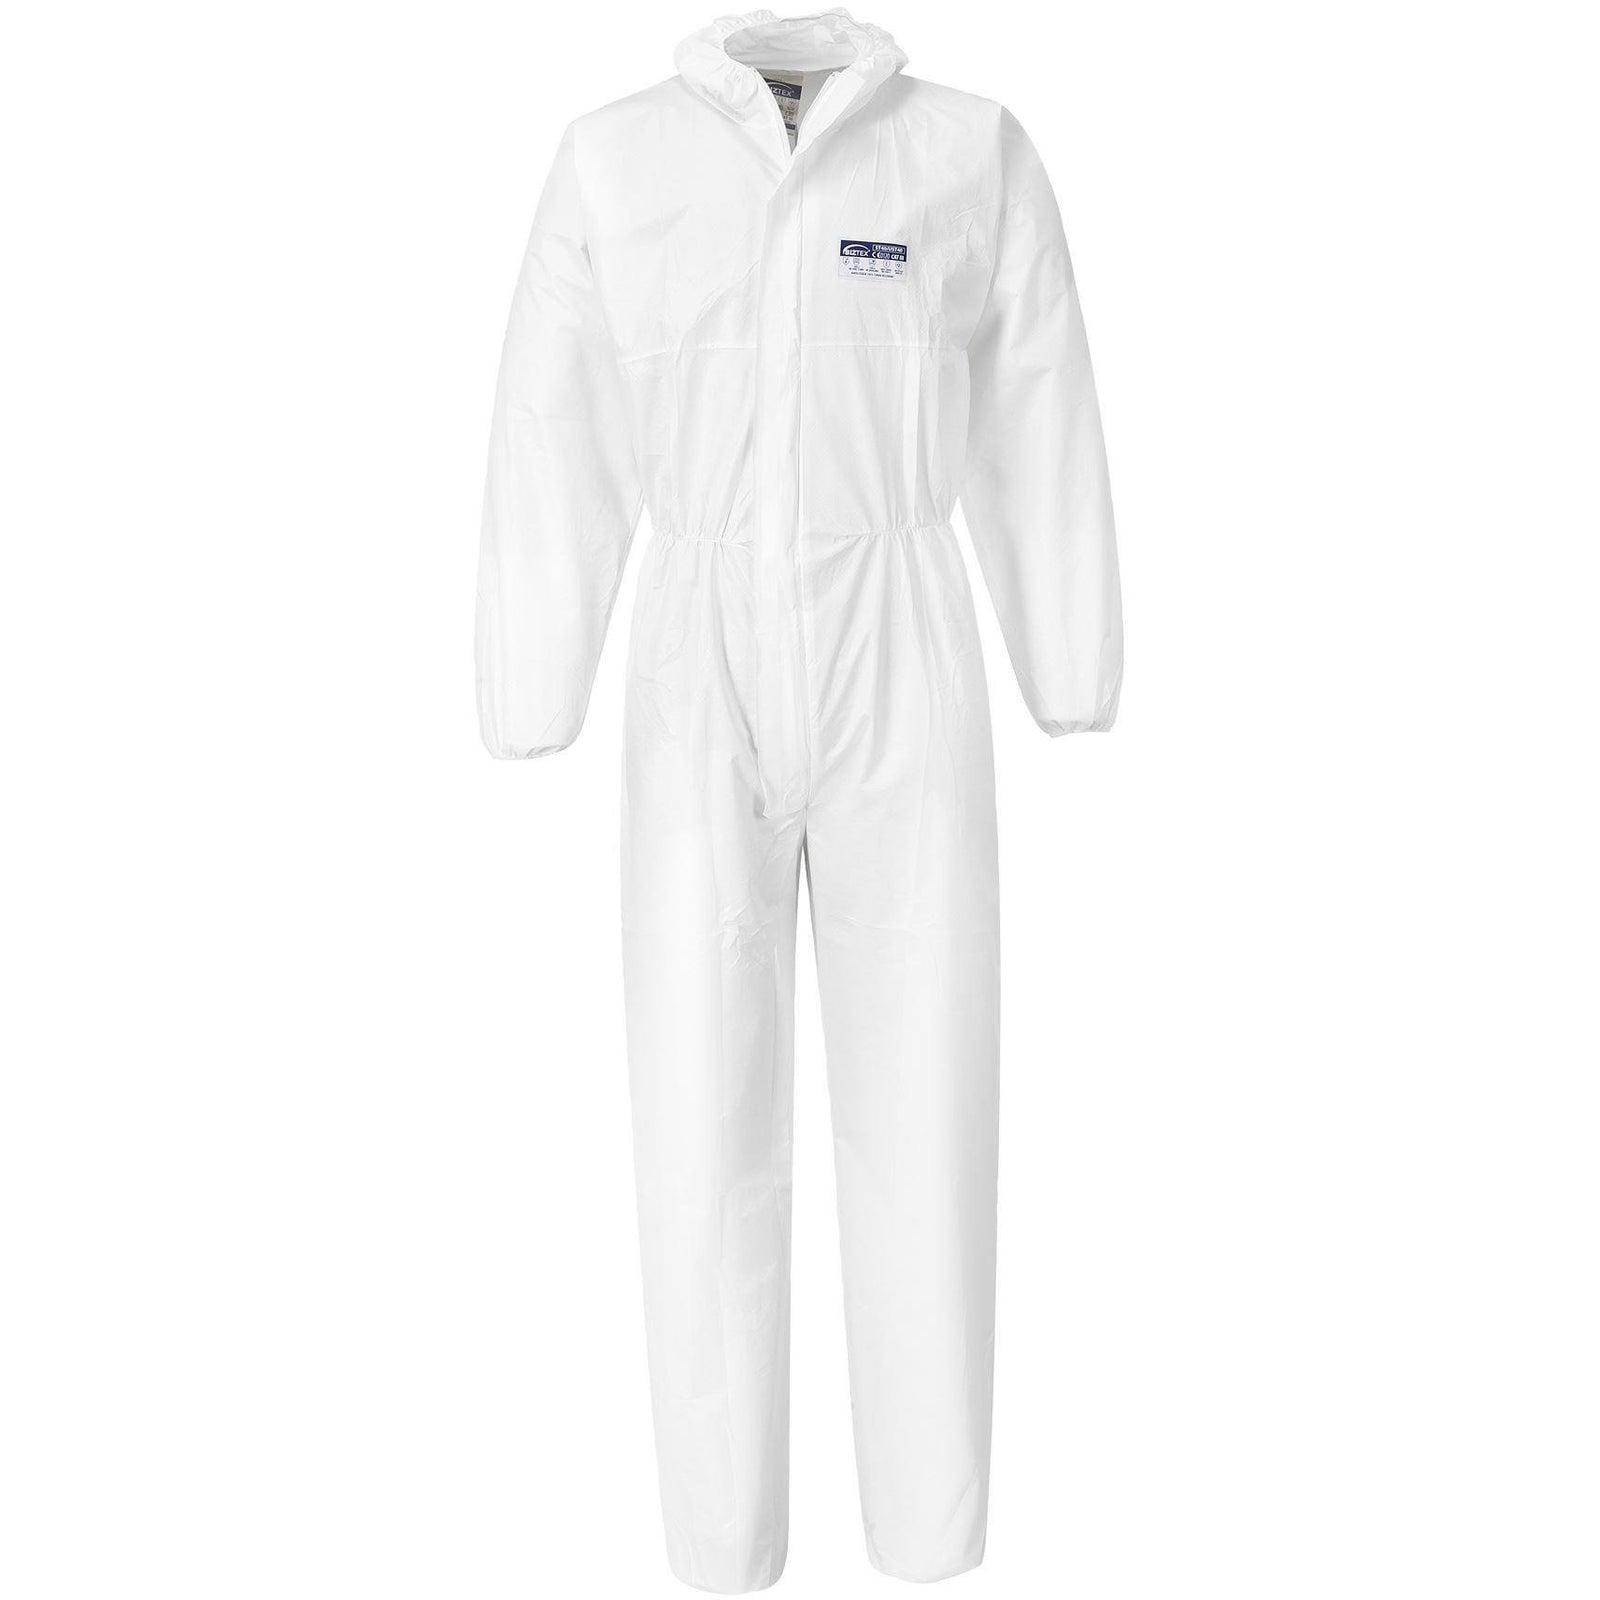 Portwest BizTex Microporous Coverall Type 6/5 ST40 - reid outdoors